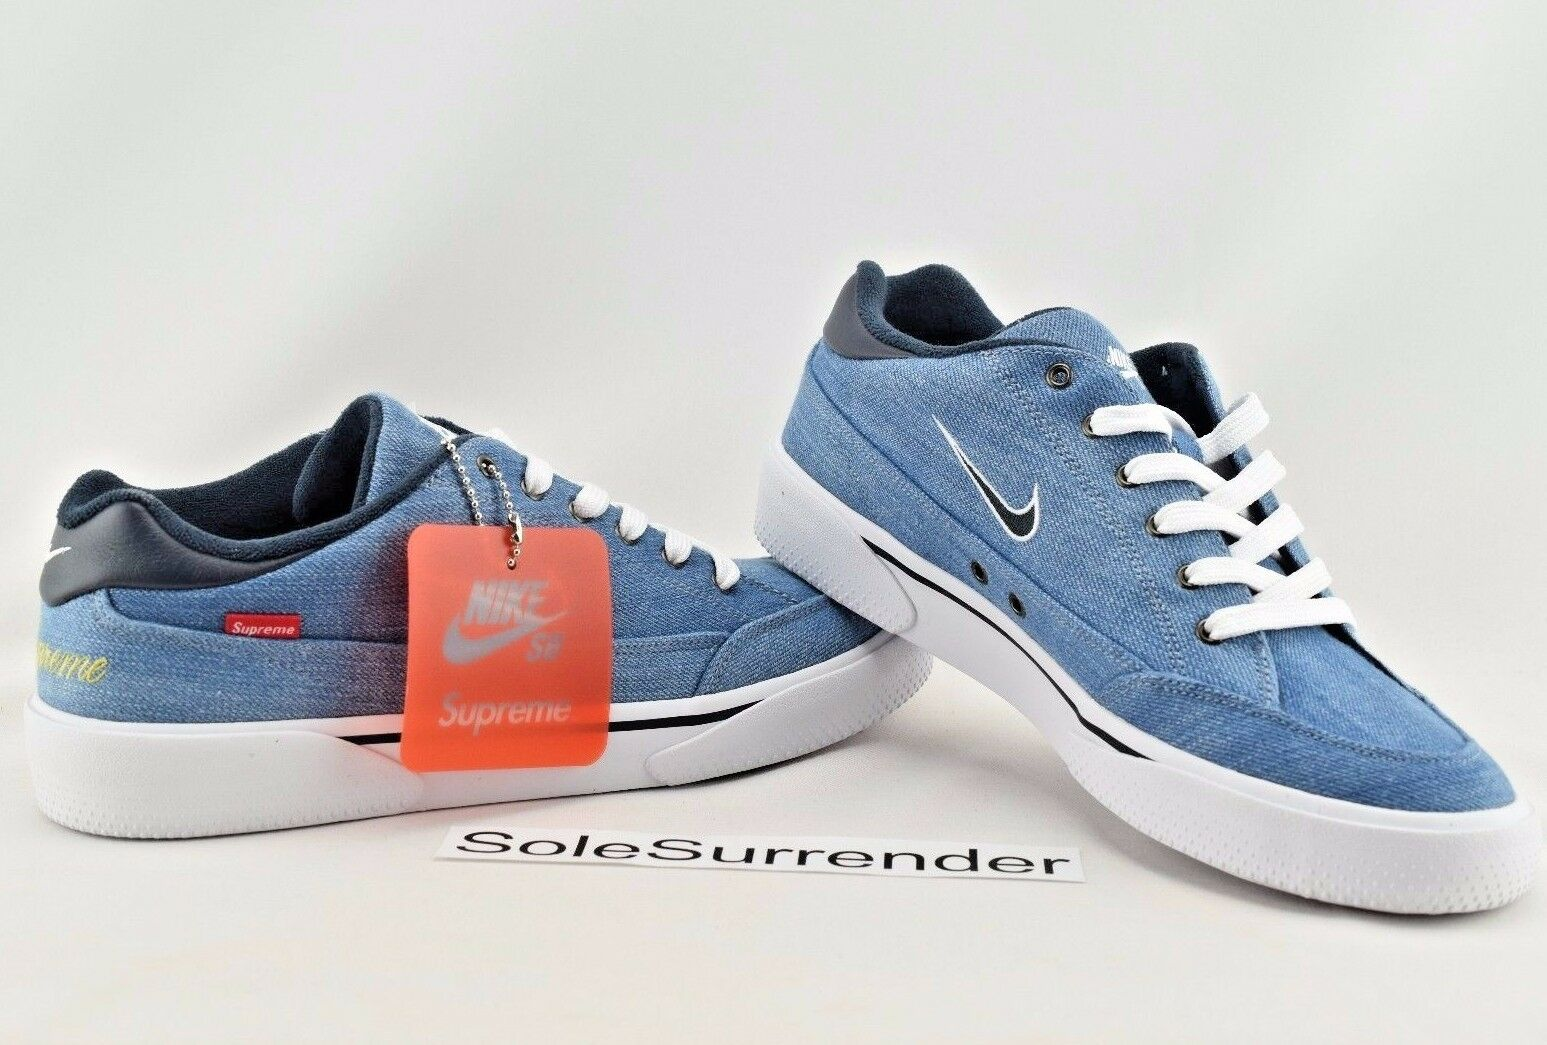 Nike SB GTS QS Supreme  - SIZE 8.5 - NEW - 801621-441 White Obsidian Blue Denim The most popular shoes for men and women